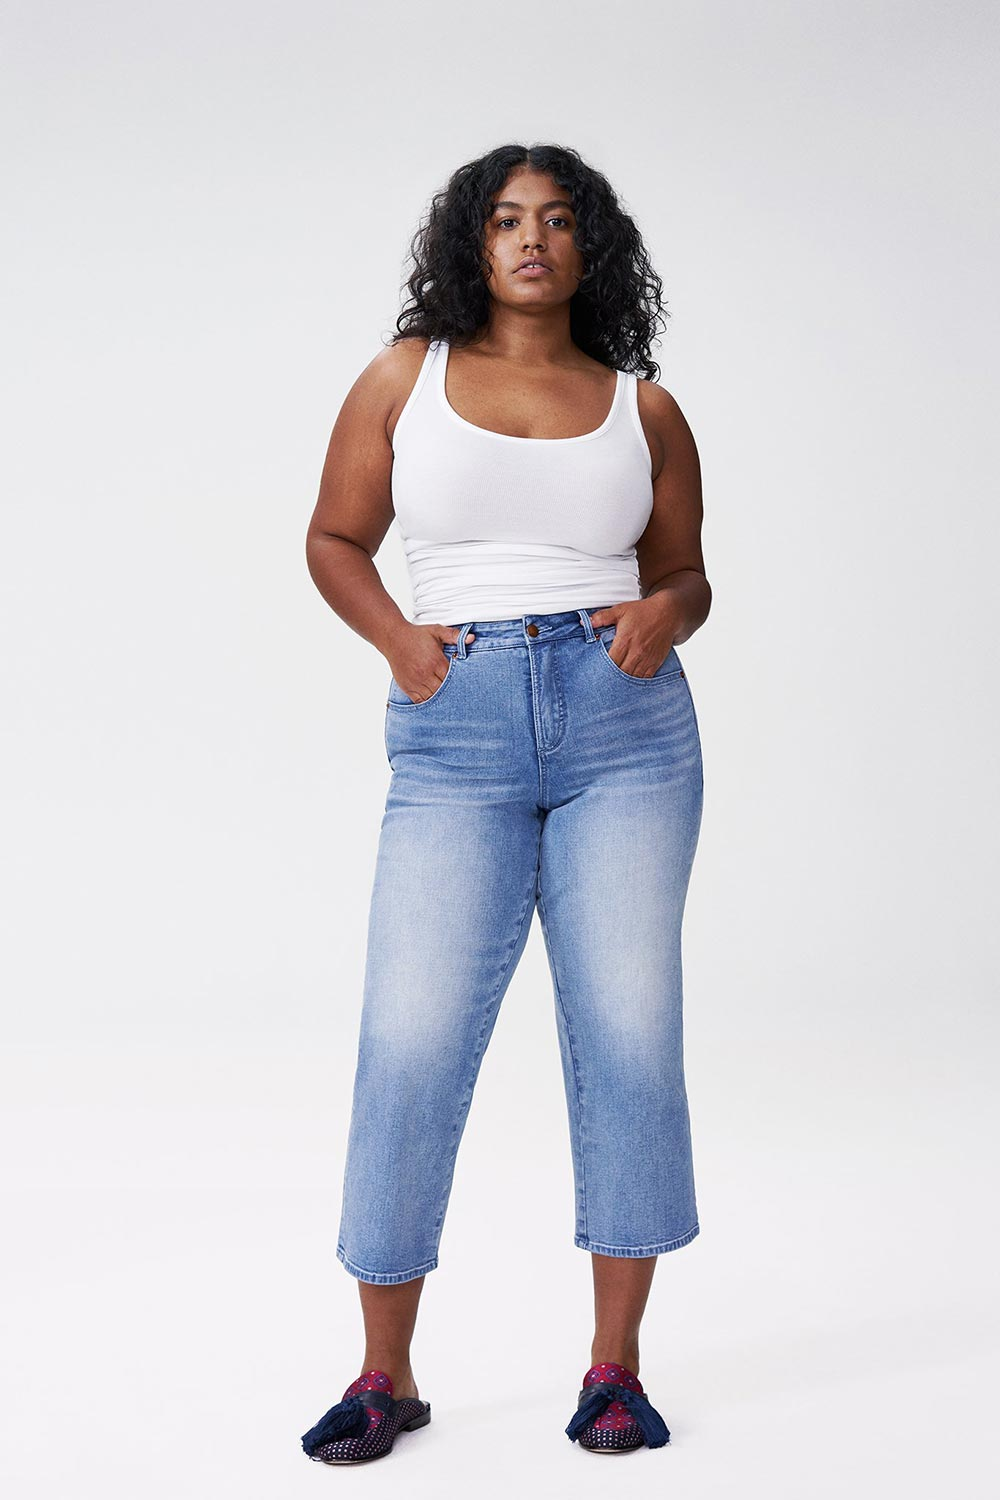 1d2102c8e71 Working with some of the industry's top creative teams, Universal Standard  is setting a new standard in plus size fashion.